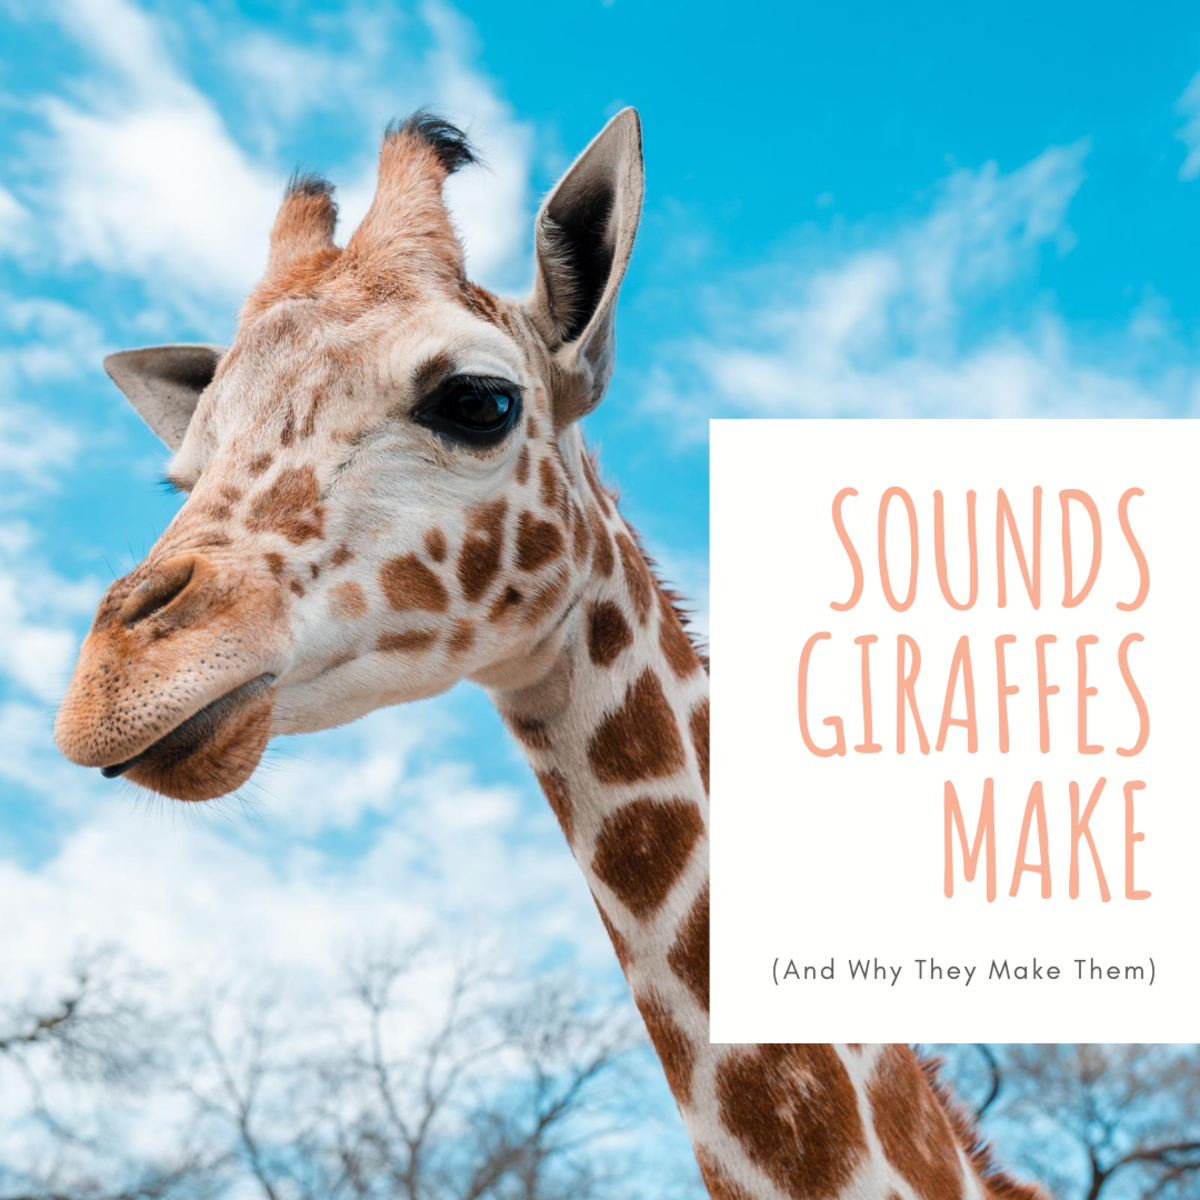 What Sounds do Giraffes Make?